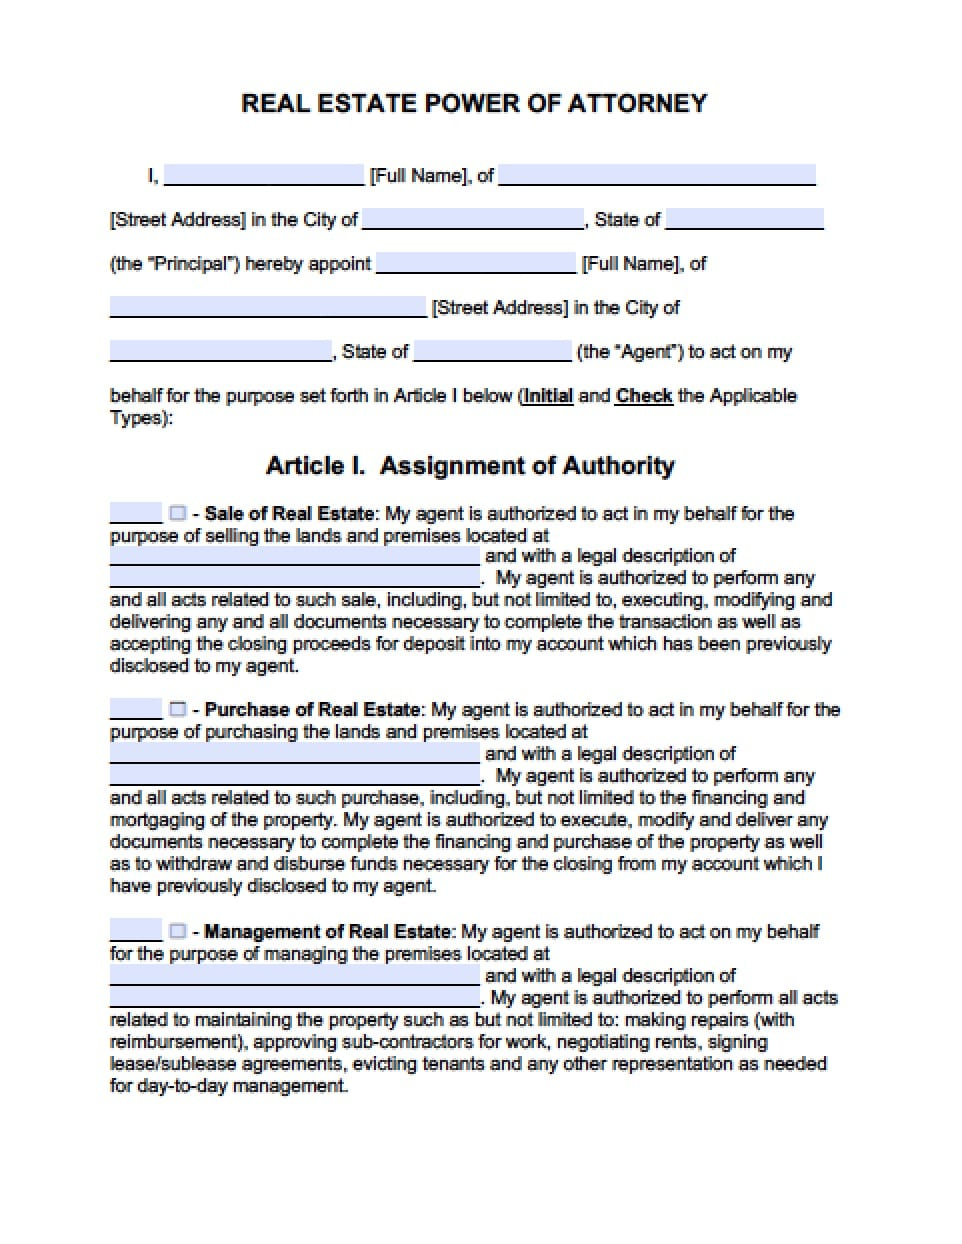 power of attorney form maryland Maryland Real Estate ONLY Power of Attorney Form - Power of Attorney ...